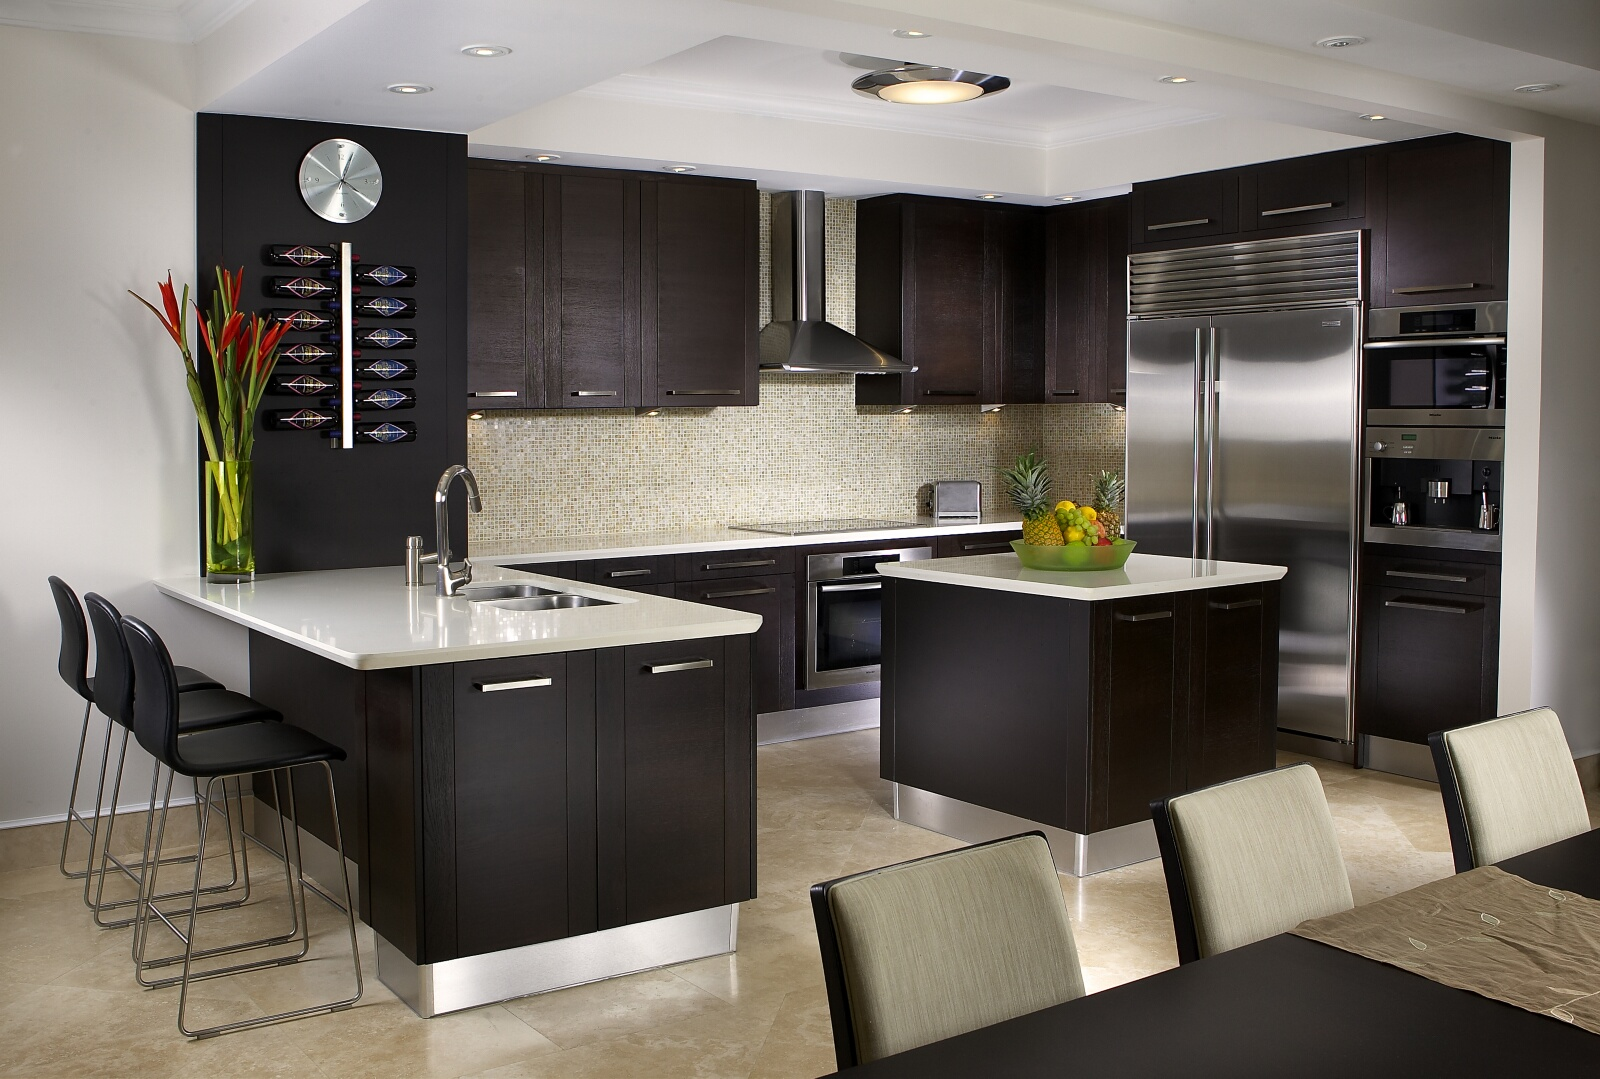 Kitchen interior design services miami florida Kitchenette decorating ideas